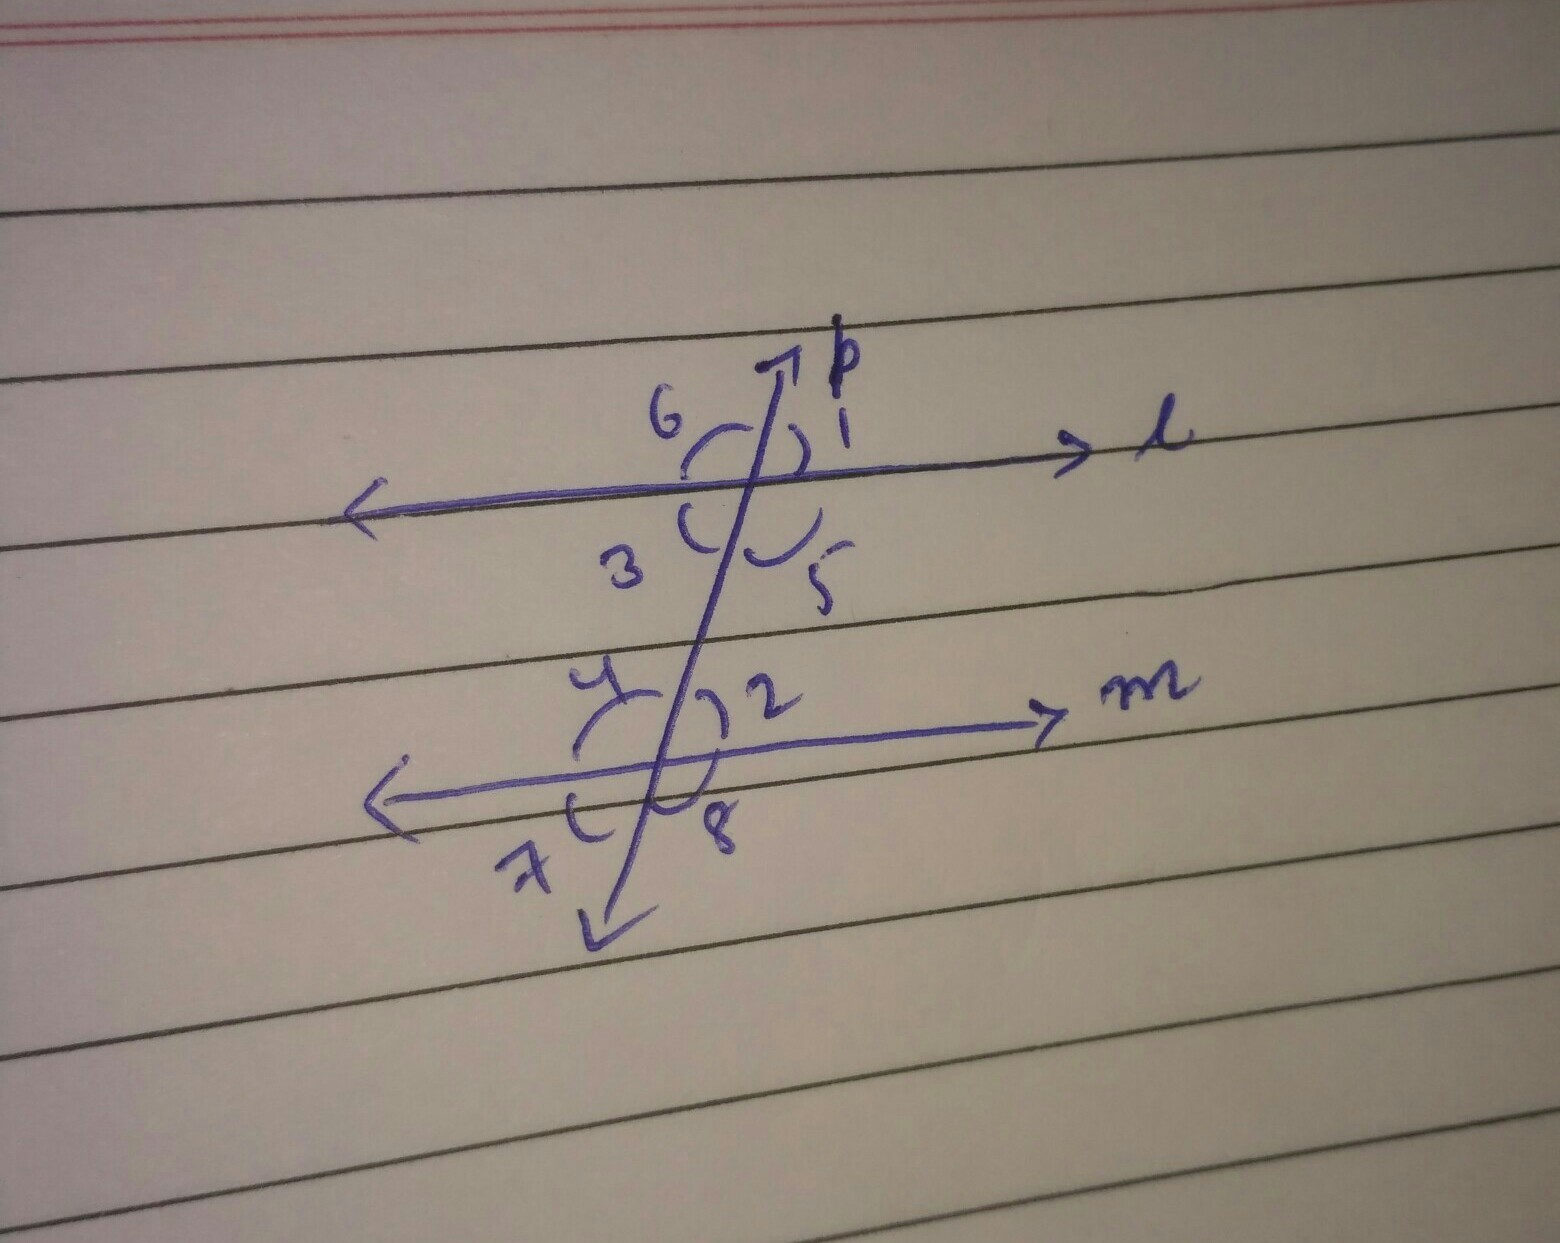 Prove If A Transversal Intersects Two Parallel Lines Then